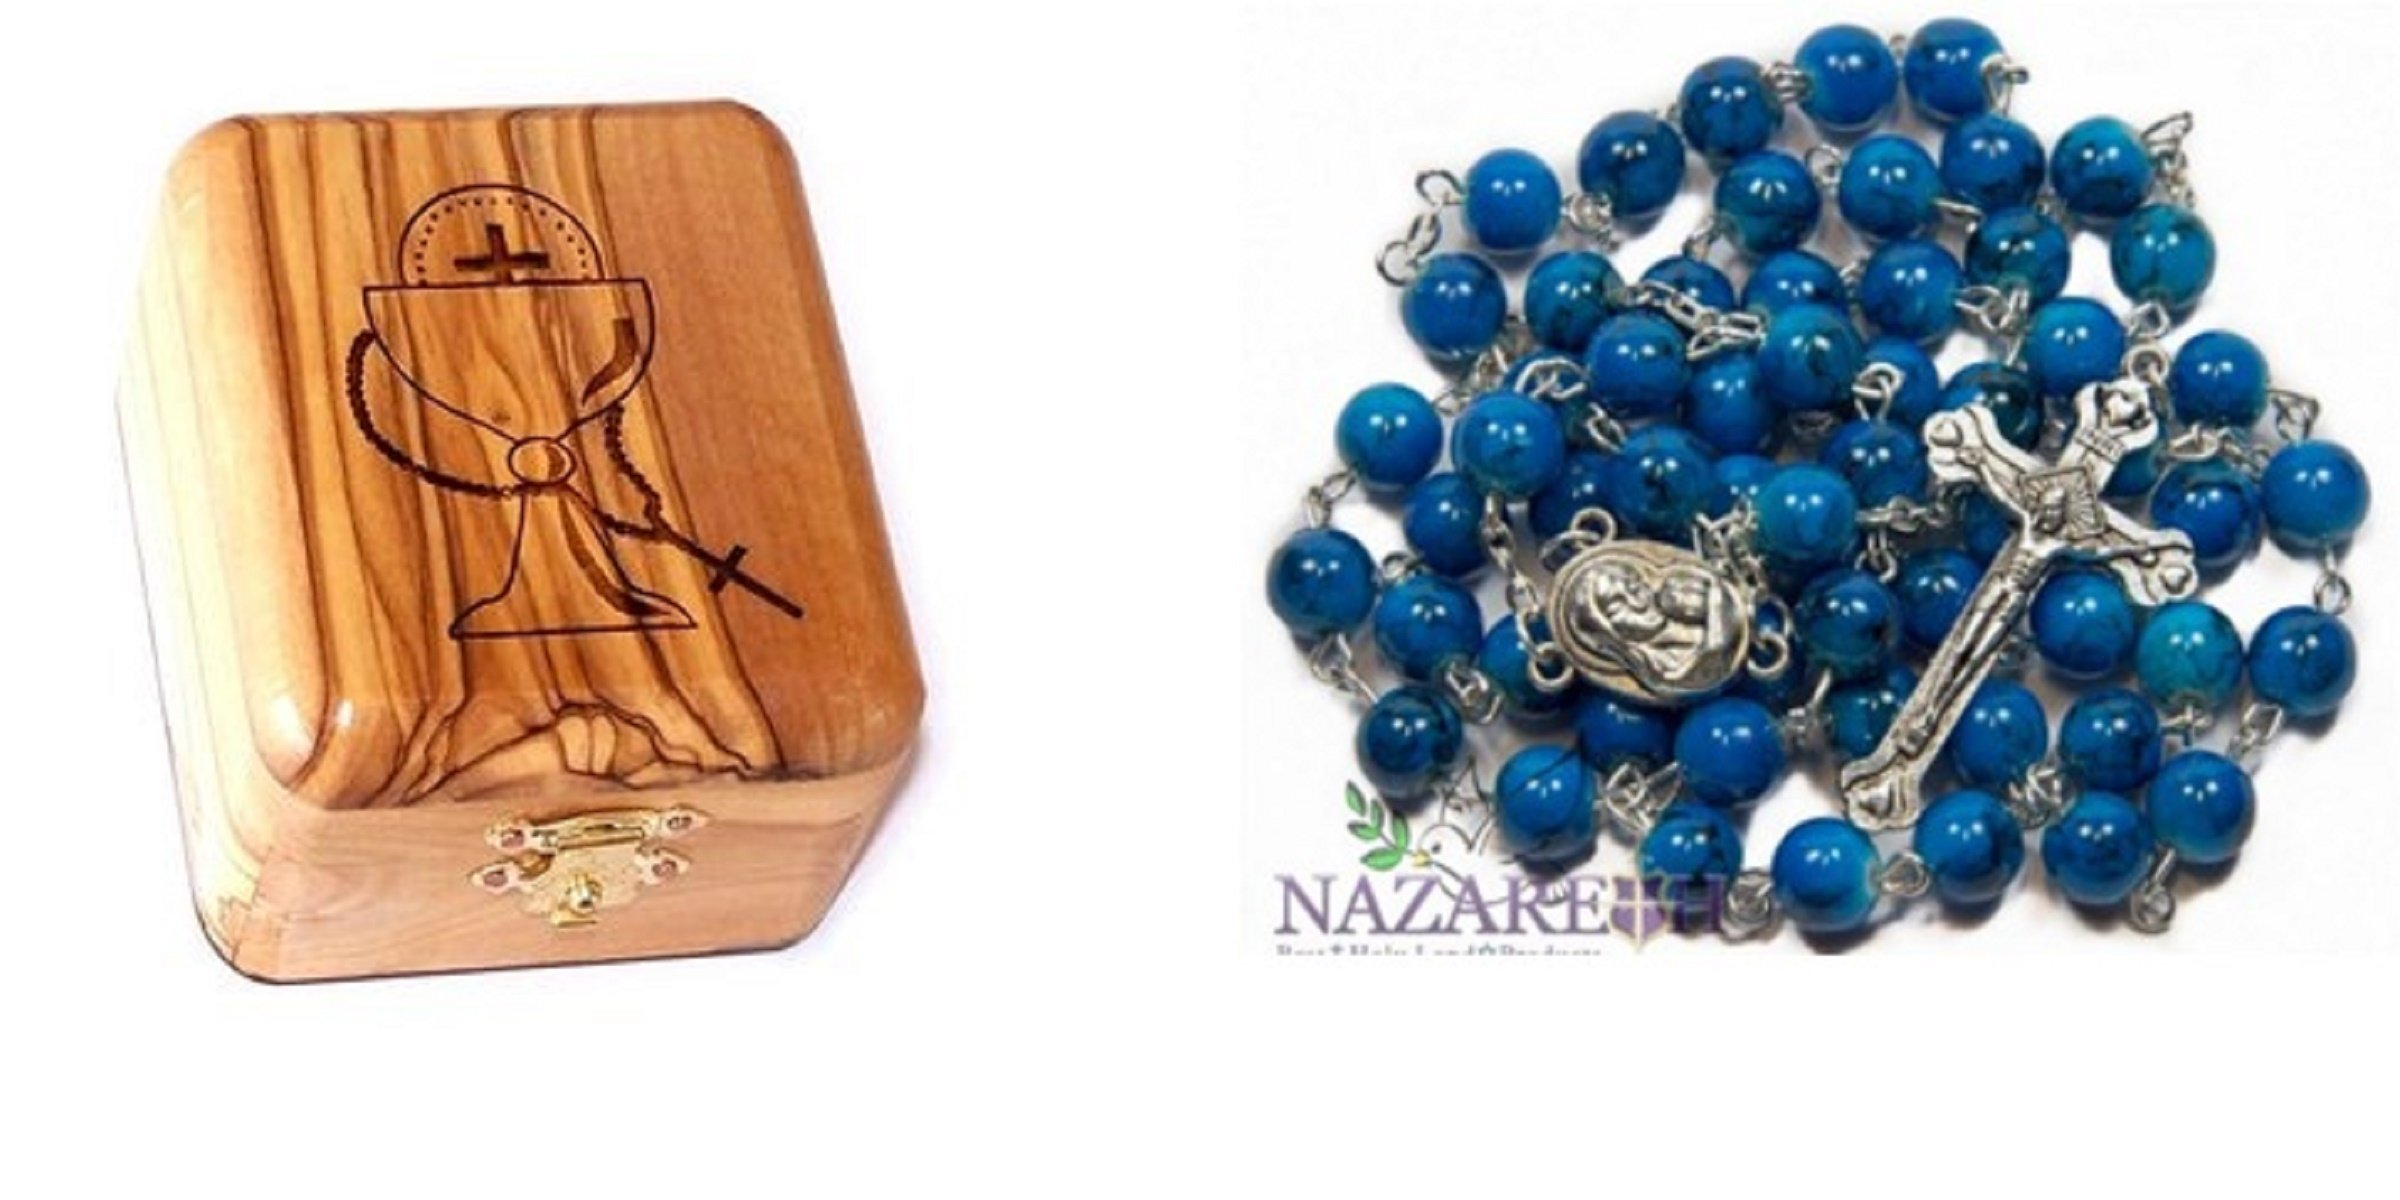 Bethlehem Gifts TM Olive Wood First Communion Jewelry Box with Rosary Set by (Beautiful Round Blue Glass)